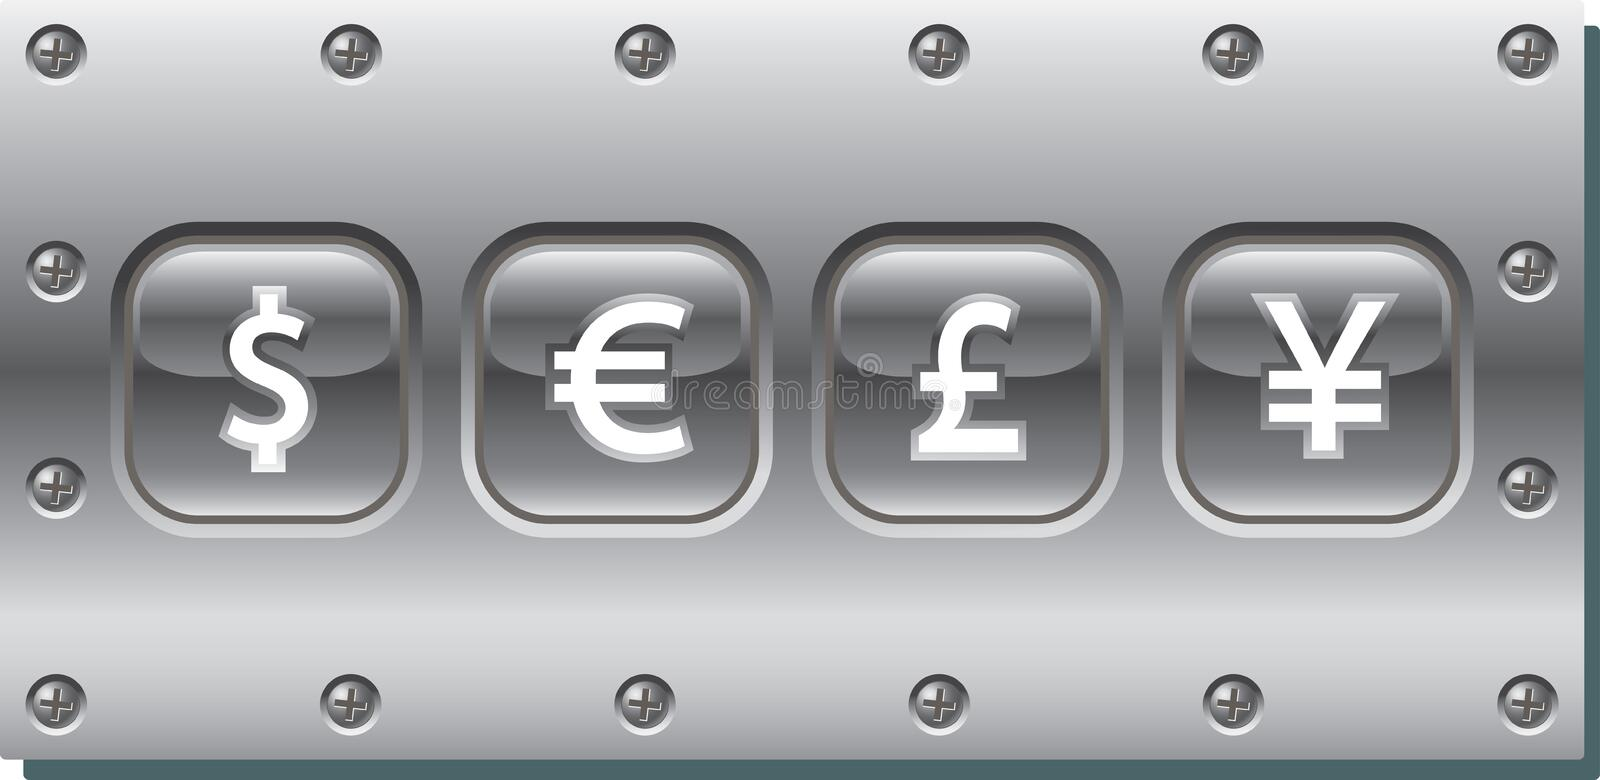 Vector image of metal signboard with various currengy symbols. Vector drawing of various currency symbols on metallic signboard stock illustration